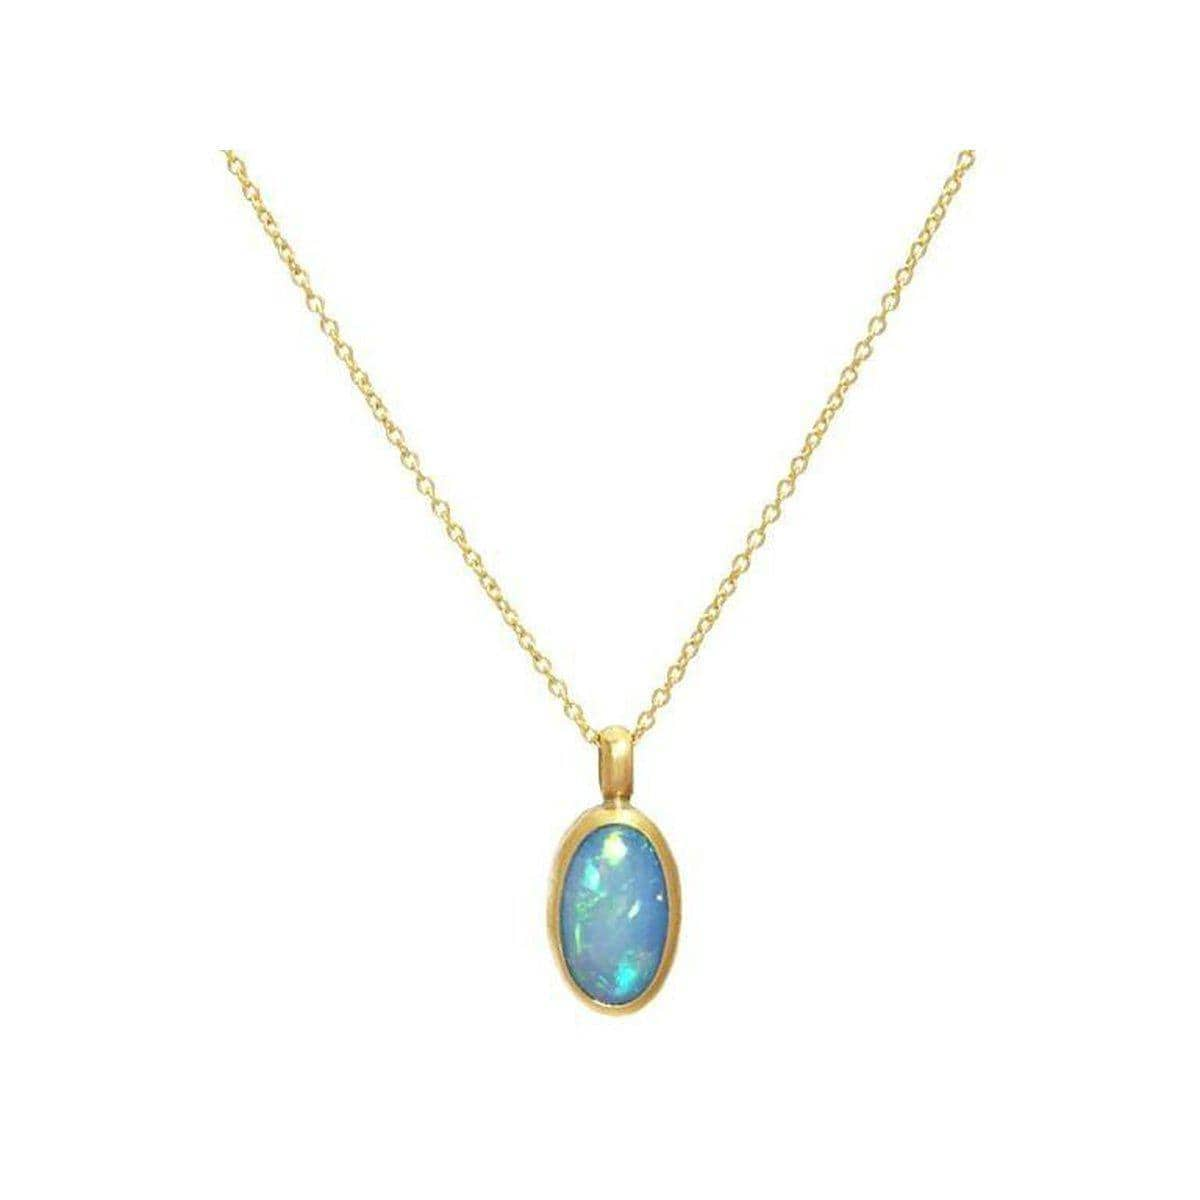 Amulet Hue 24K Gold Opal Necklace - N-U23866-OP